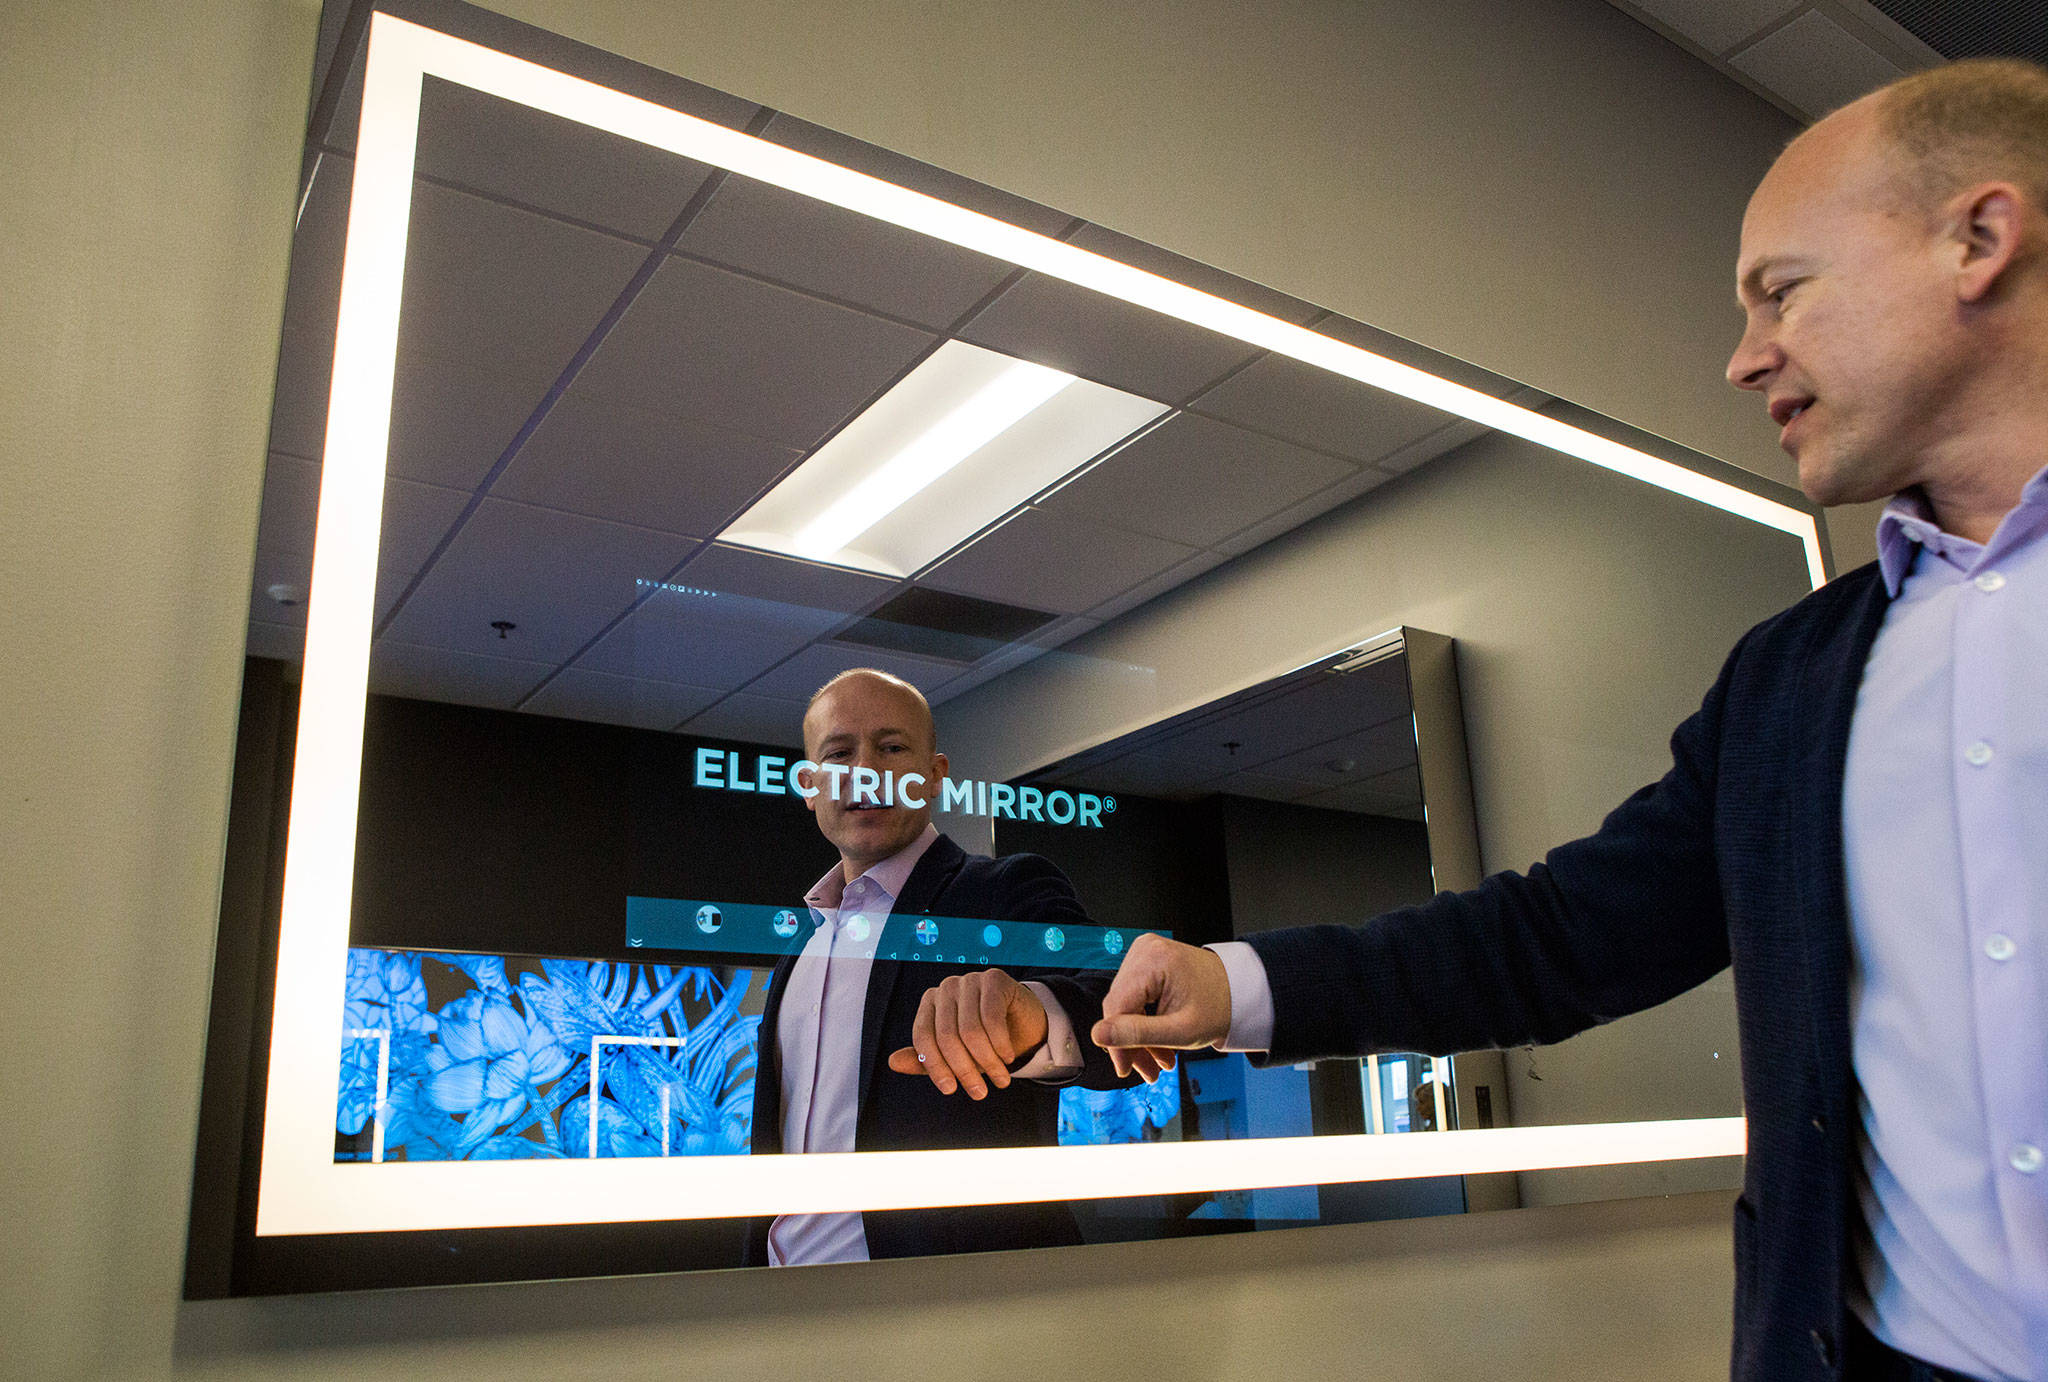 Electric Mirror President and CEO Jim Mischel demonstrates some of the features of the Everett company's new Savvy Home SmartMirror. (Olivia Vanni / The Herald)